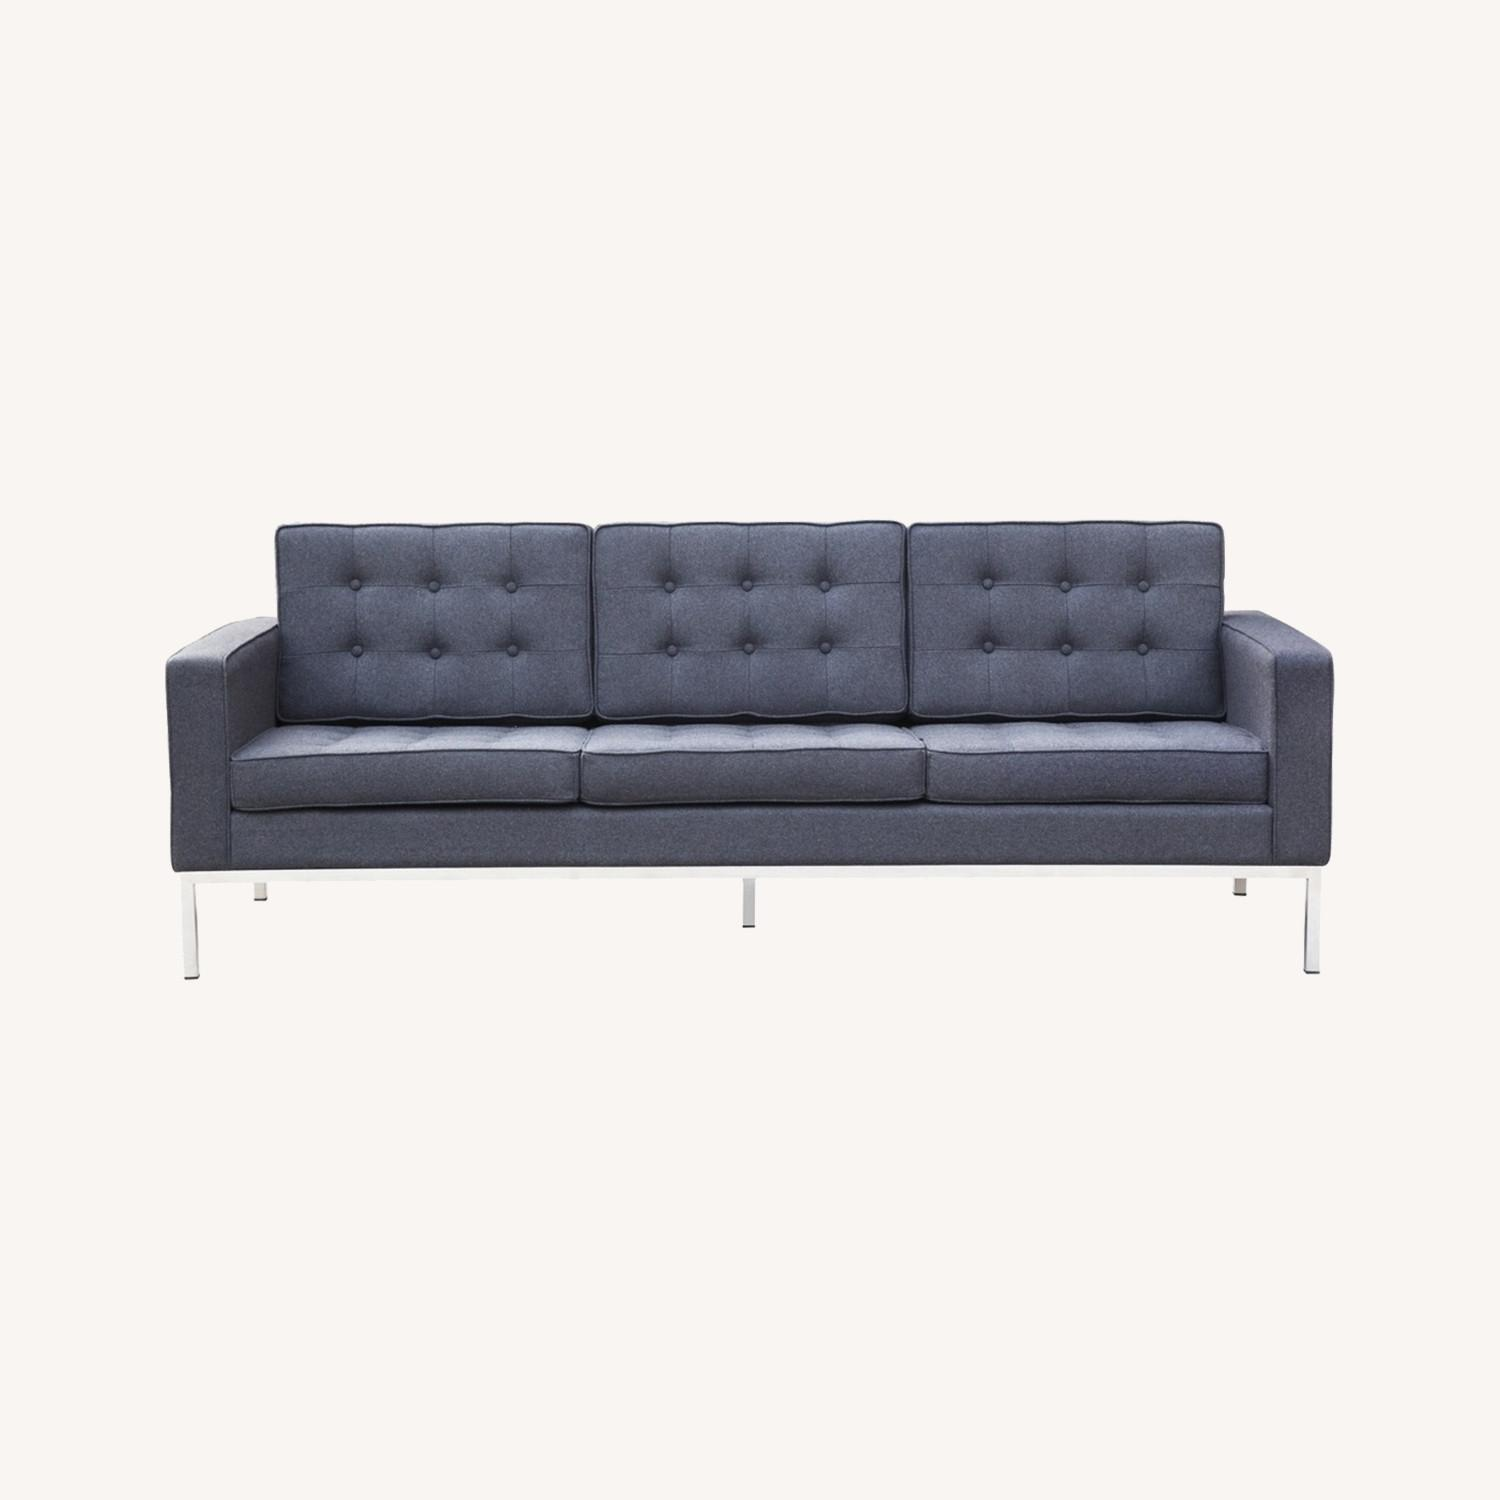 Contemporary Sofa In Gray Wool Fabric - image-7